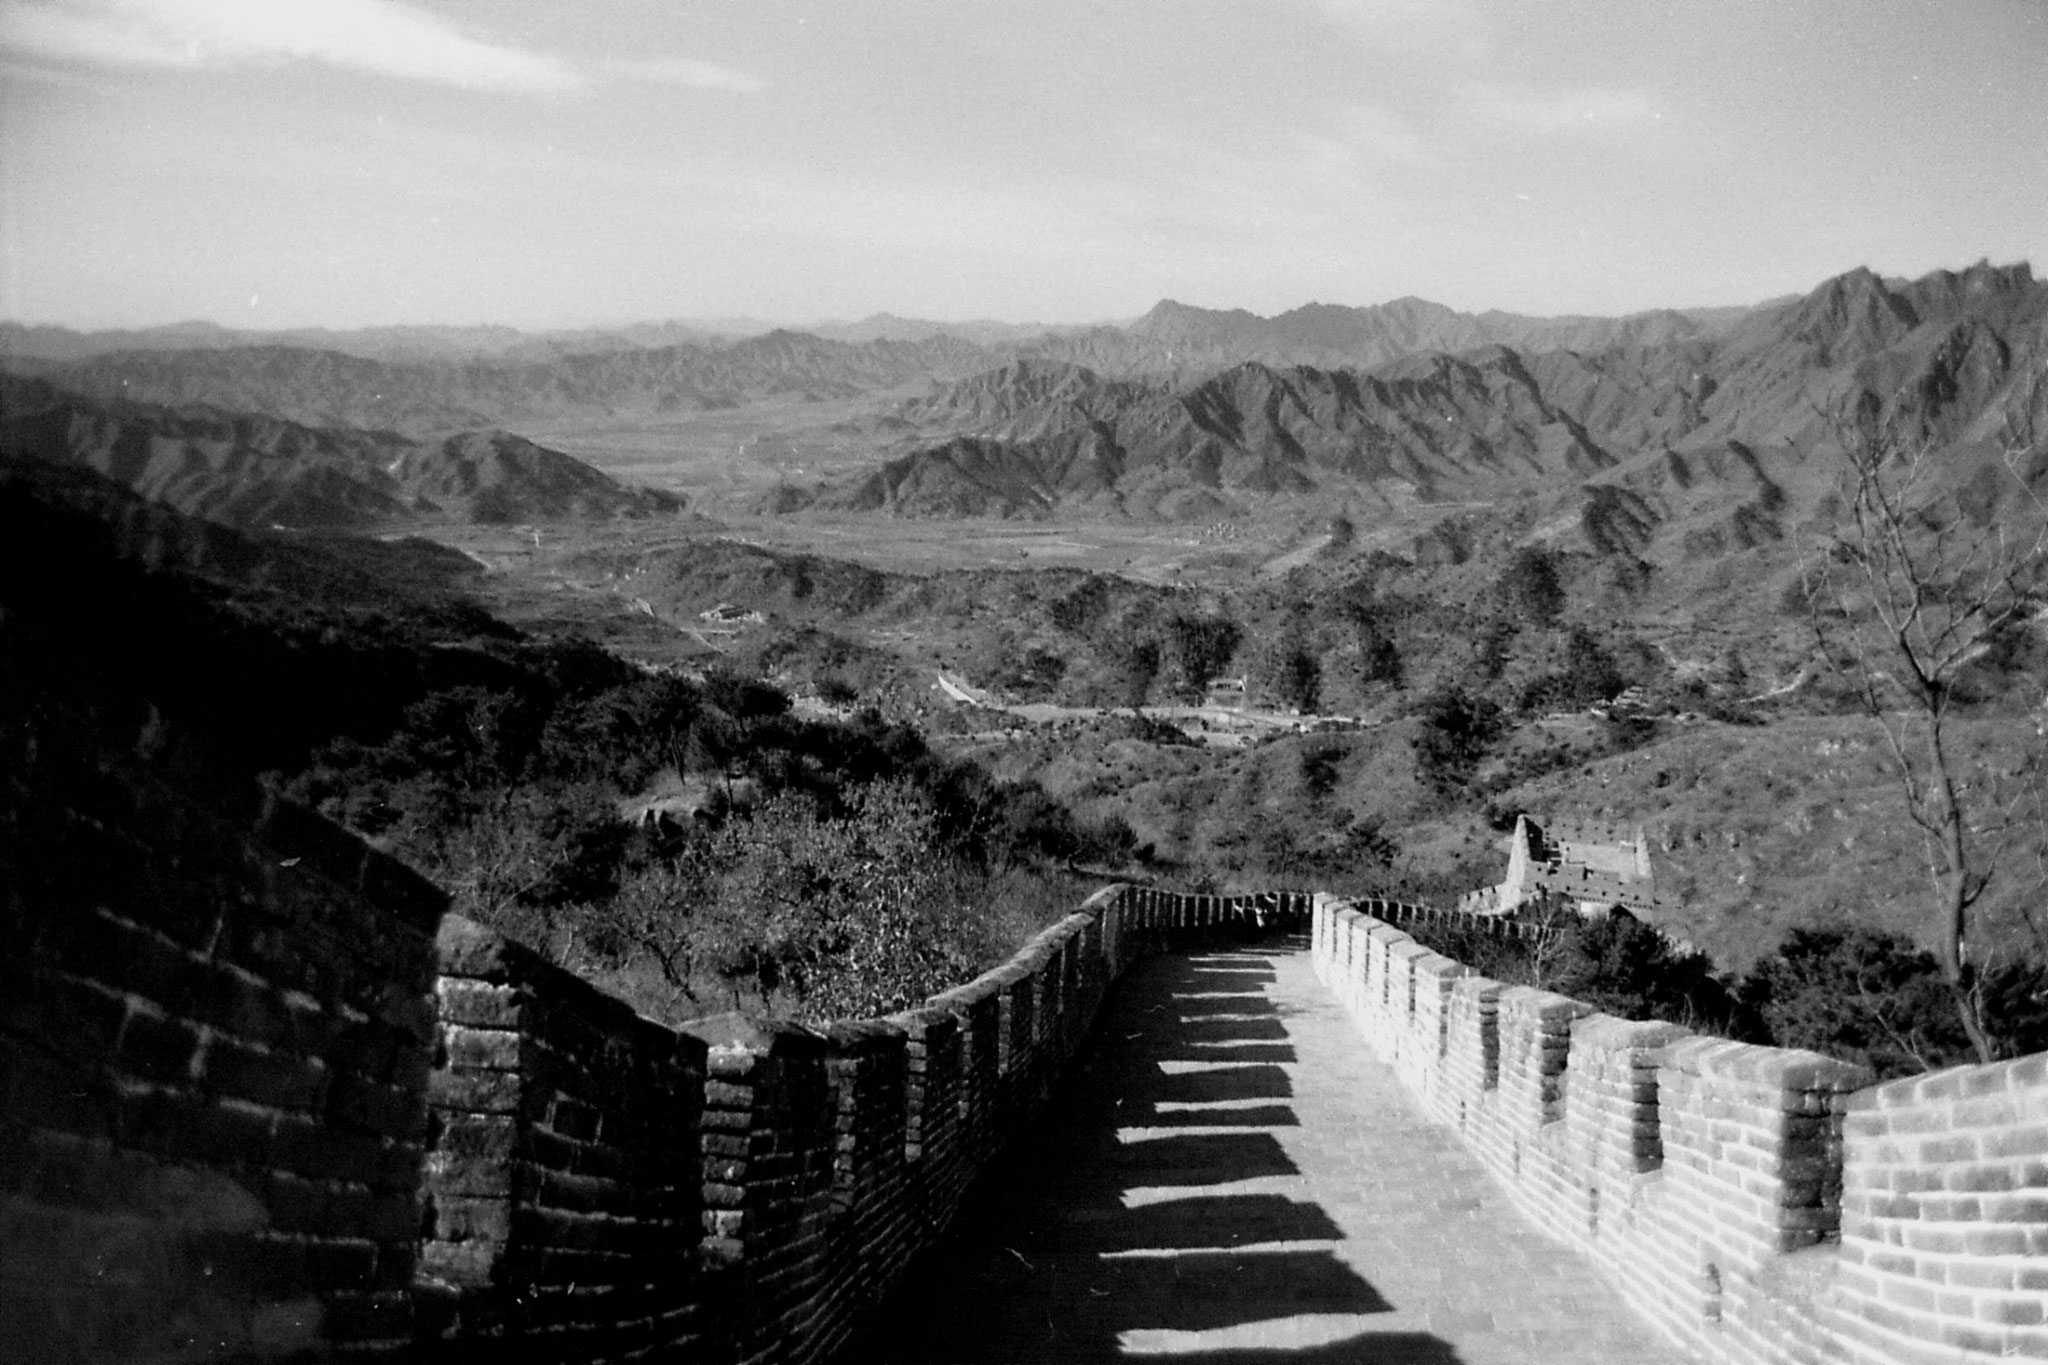 13/11/1988: 11: Great Wall at Mutianyu